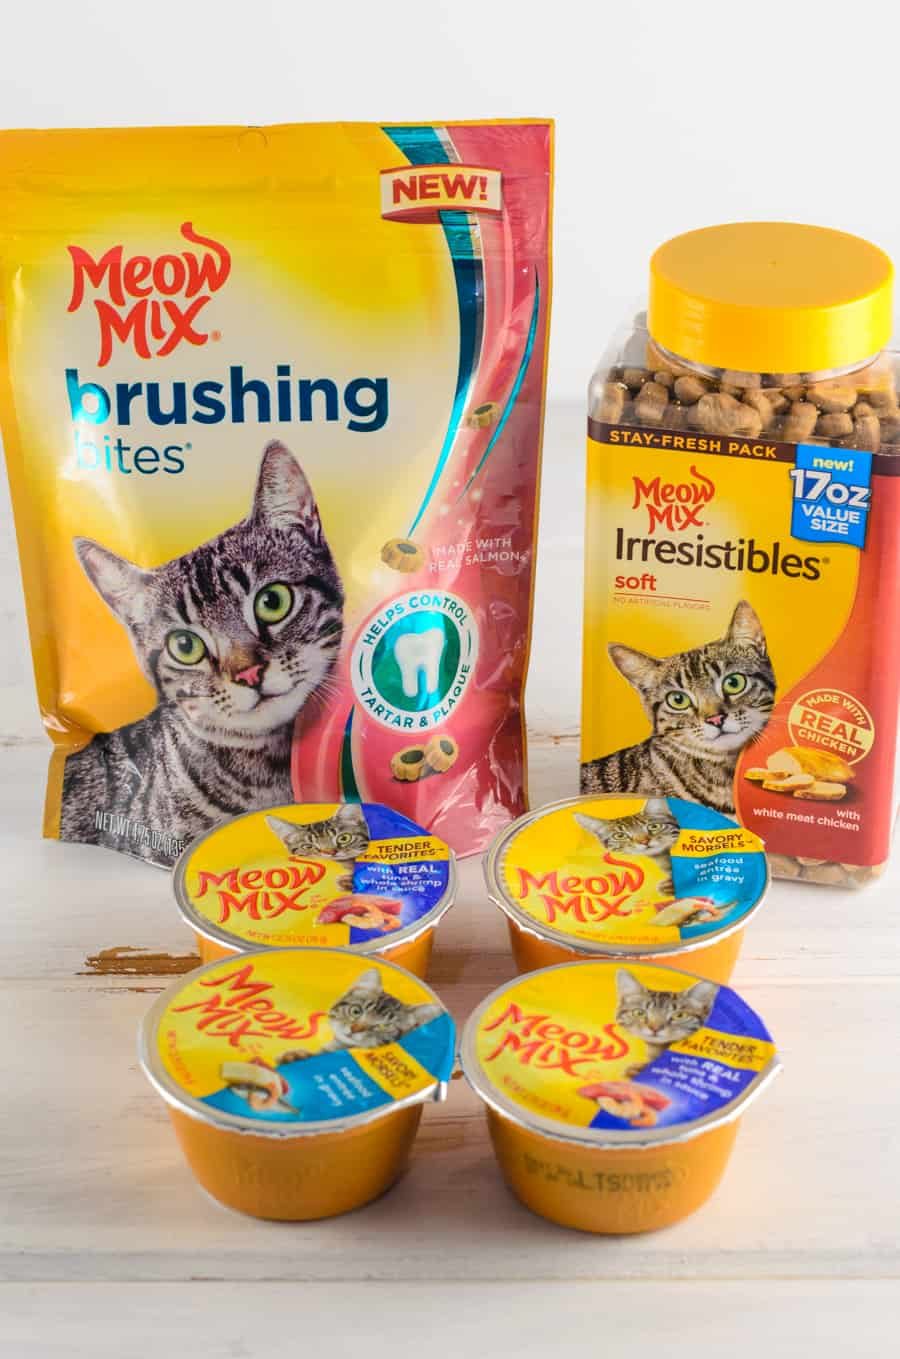 Cat Bored Of Their Food? Mix Things Up With Meow Mix At Target! 1